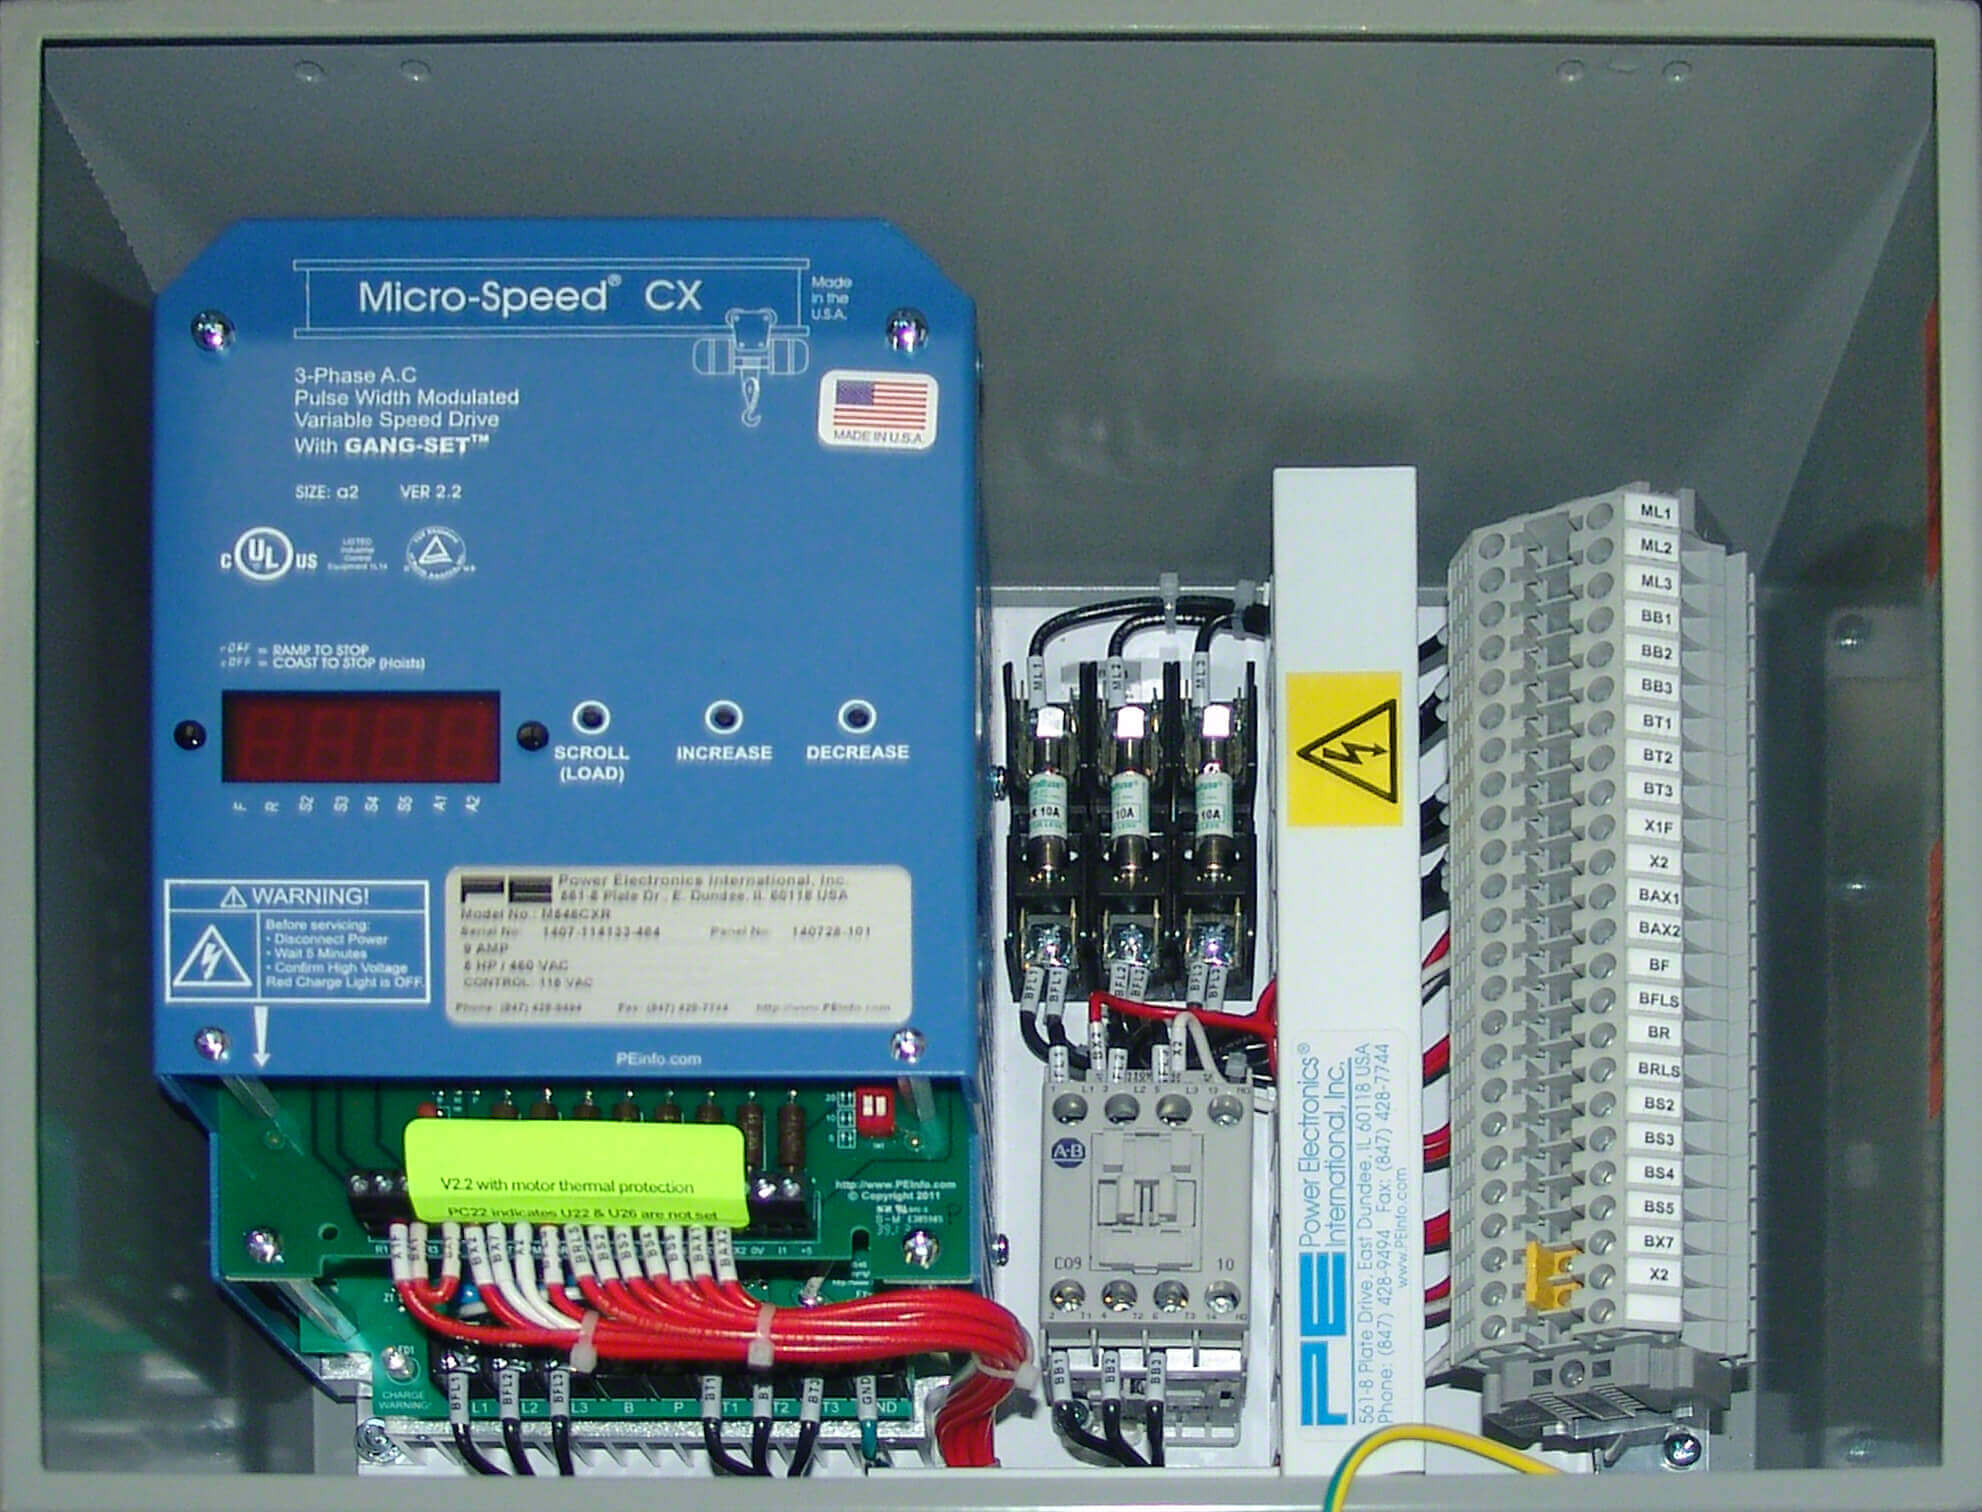 Standard Travel Motion Control Panels (Power Elec.)